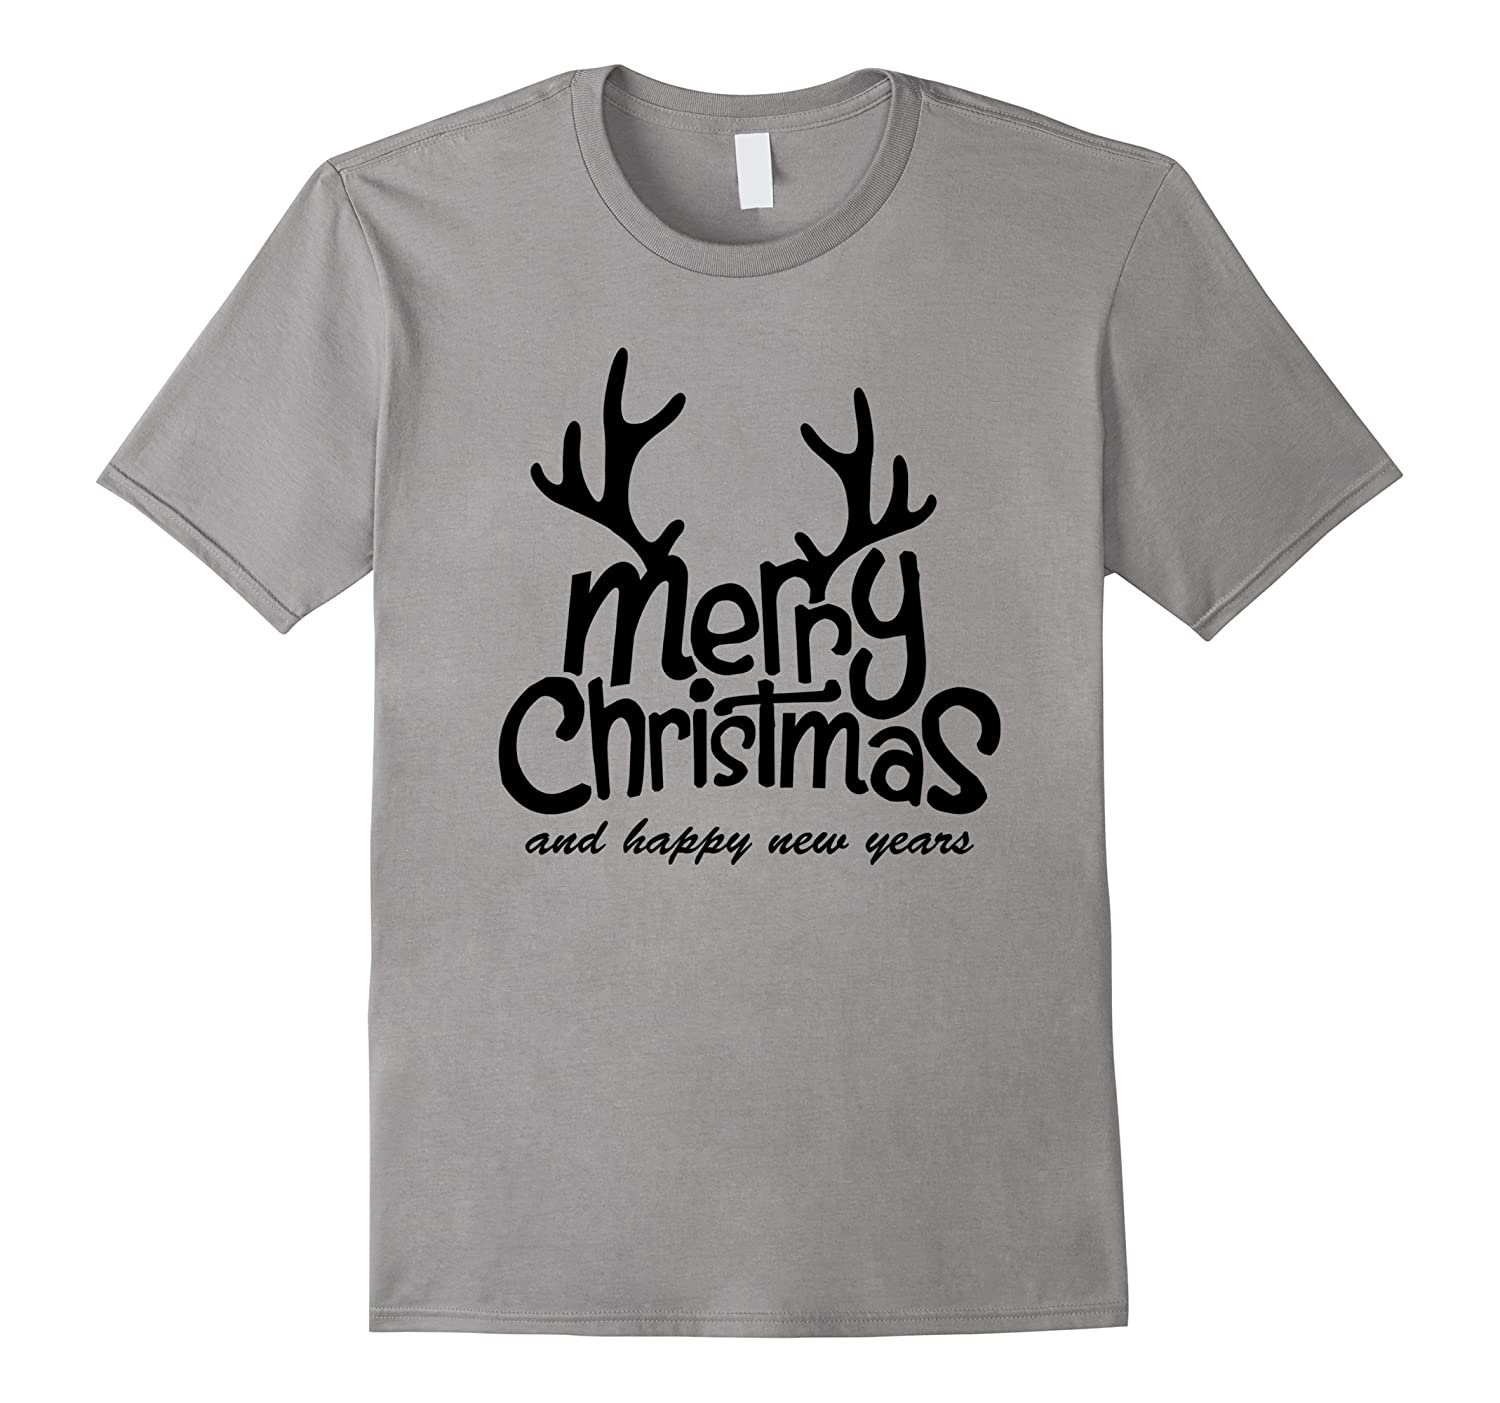 Men Women Gift T-Shirt, Merry Christmas And Happy New Year-CL